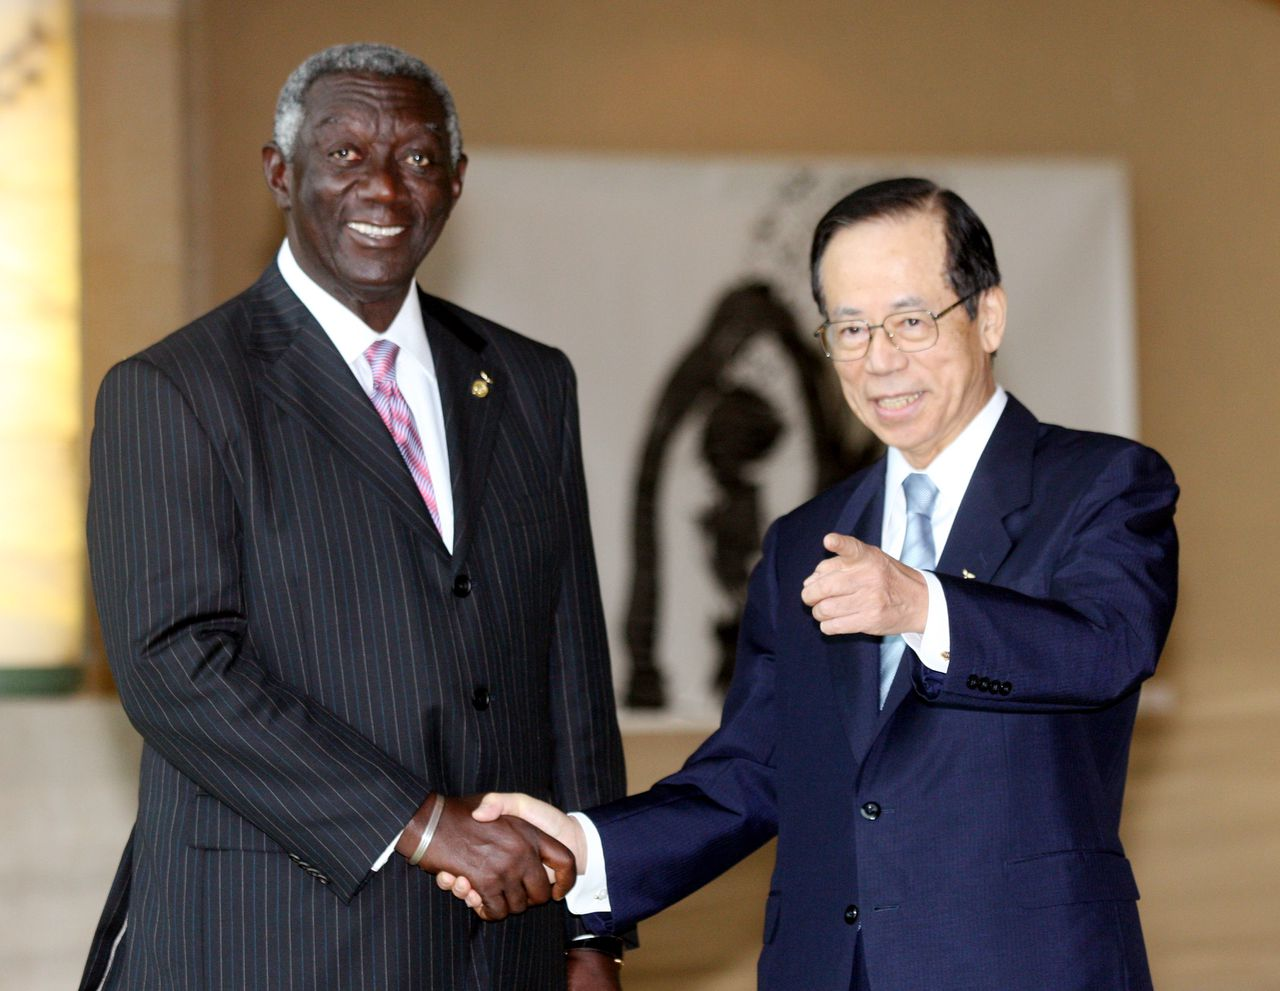 John Kufuor (70) (Foto Bloomberg) John Kufuor, Ghana's president, left, shakes hands with Yasuo Fukuda, Japan's prime minister, as he arrives at the Windsor Hotel Toya for the Group of Eight (G8) Summit in Toyako Town, Hokkaido, Japan, on Monday, July 7, 2008. Fukuda's welcome message to world leaders in Japan this week is that saving the planet is a huge challenge with no time to lose. The same may be true for his job. Photographer: Haruyoshi Yamaguchi/Bloomberg News